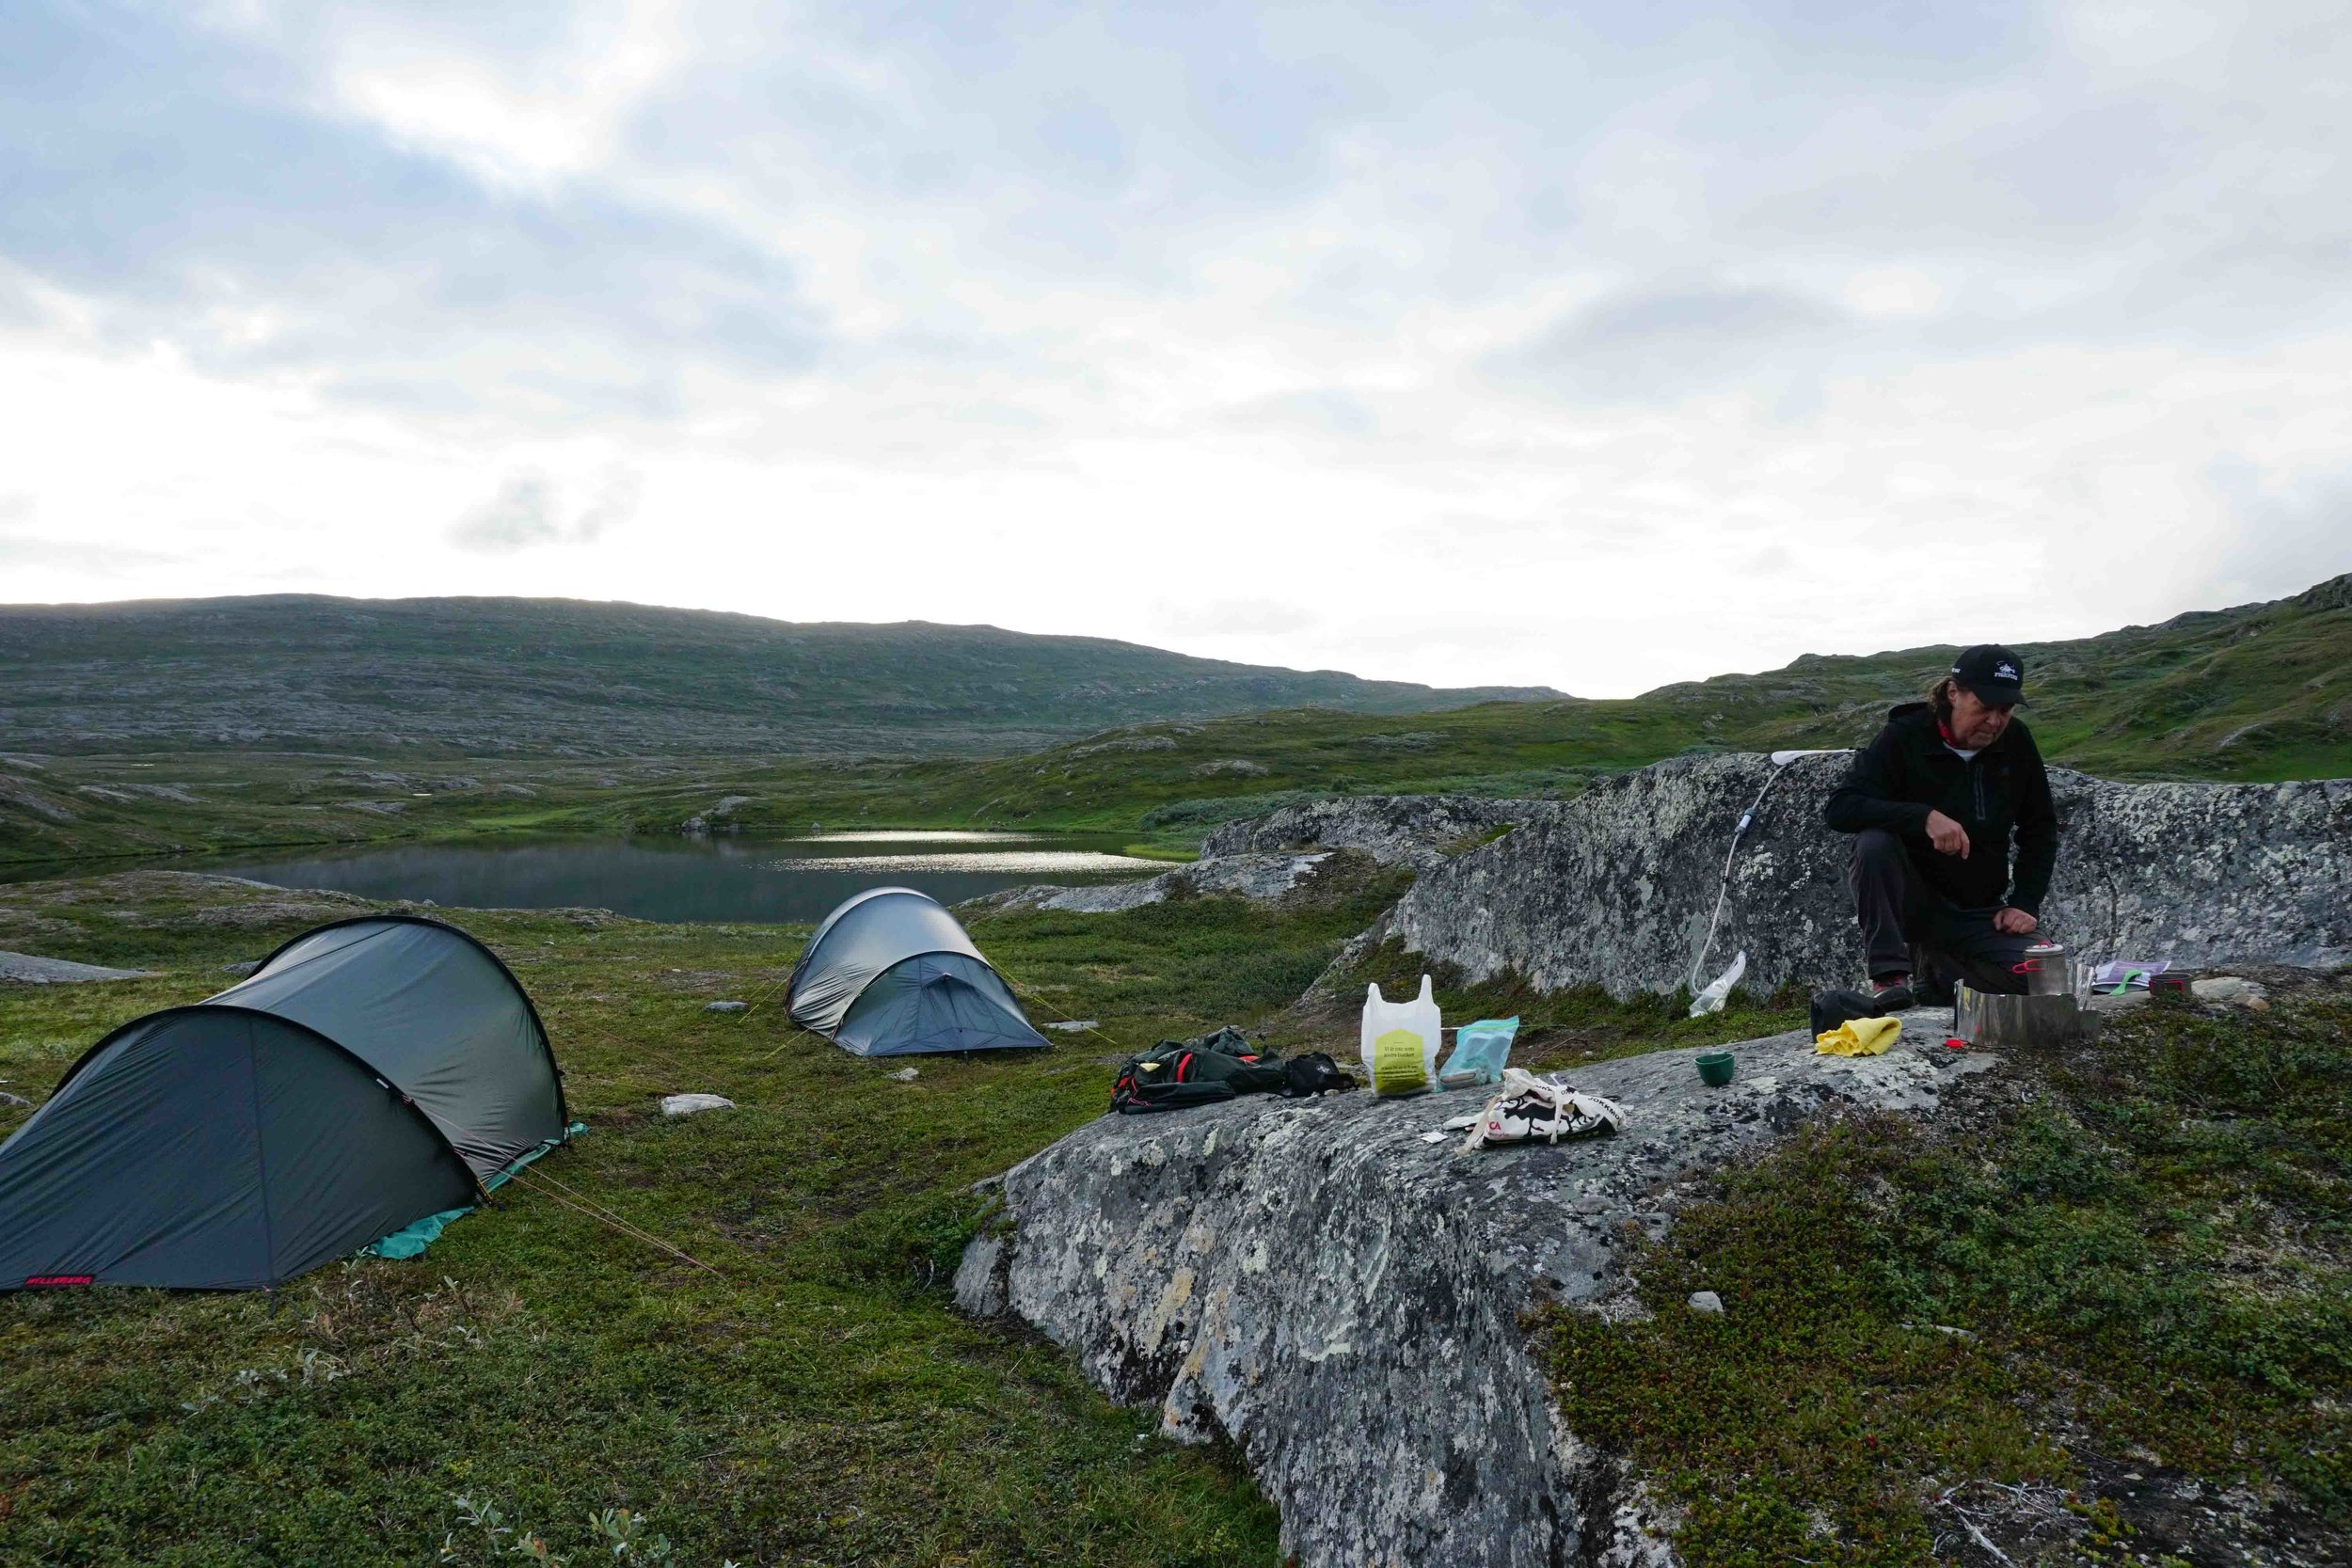 The Hilleberg Anjan tent on the left was a great addition to my gear, literally bomb proof.